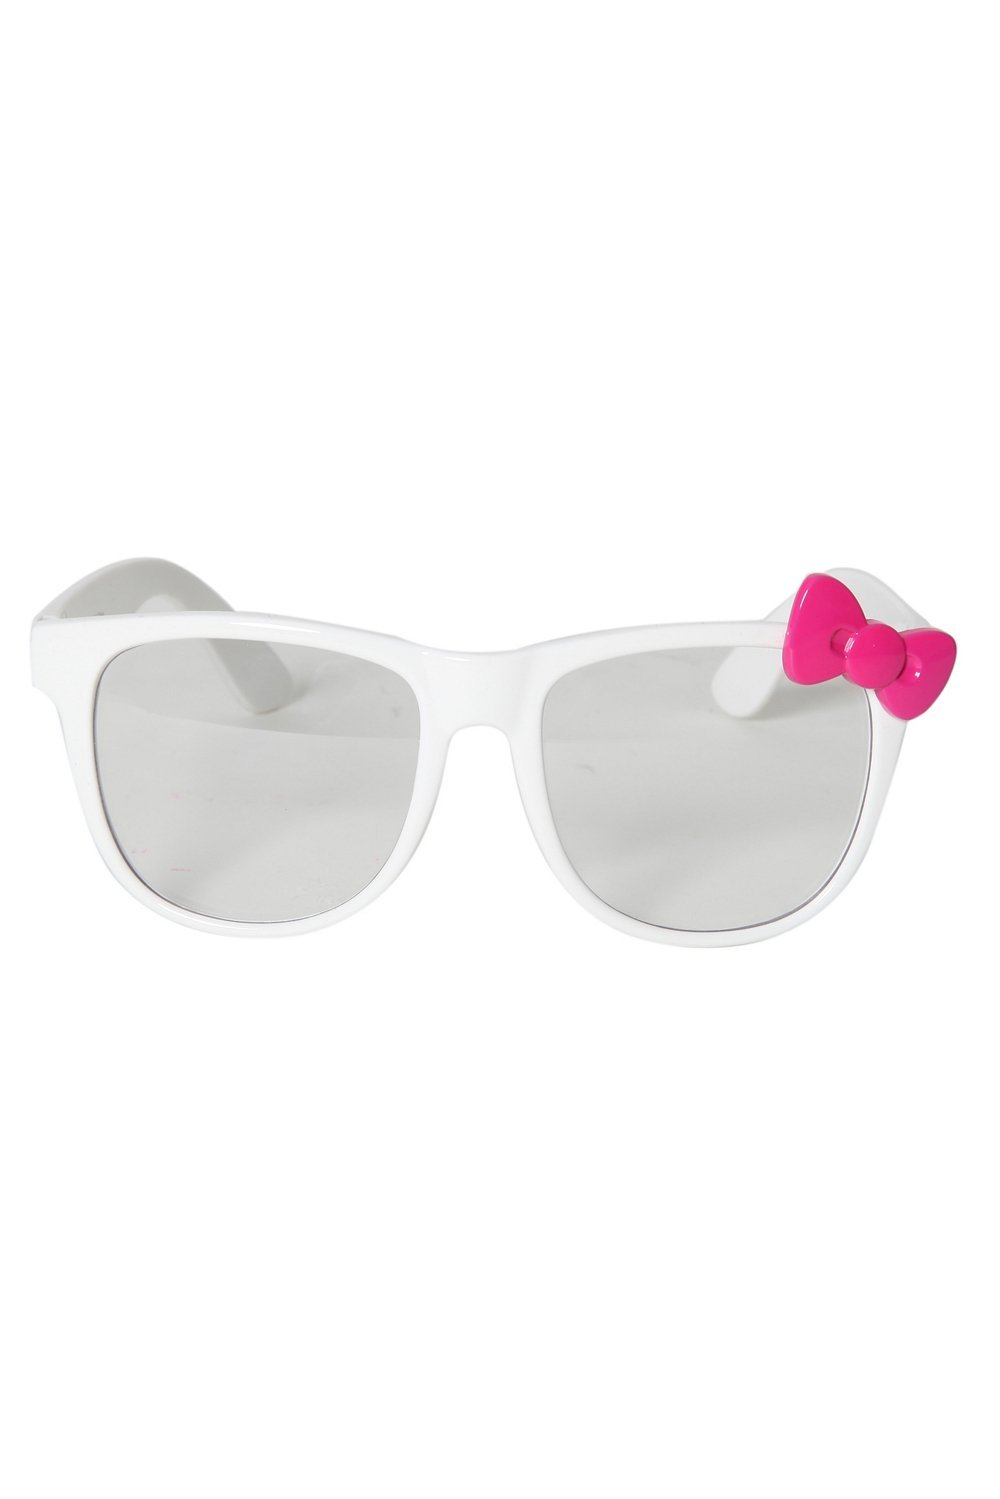 Hello Kitty White Pink Bow Retro Clear Lens Glasses